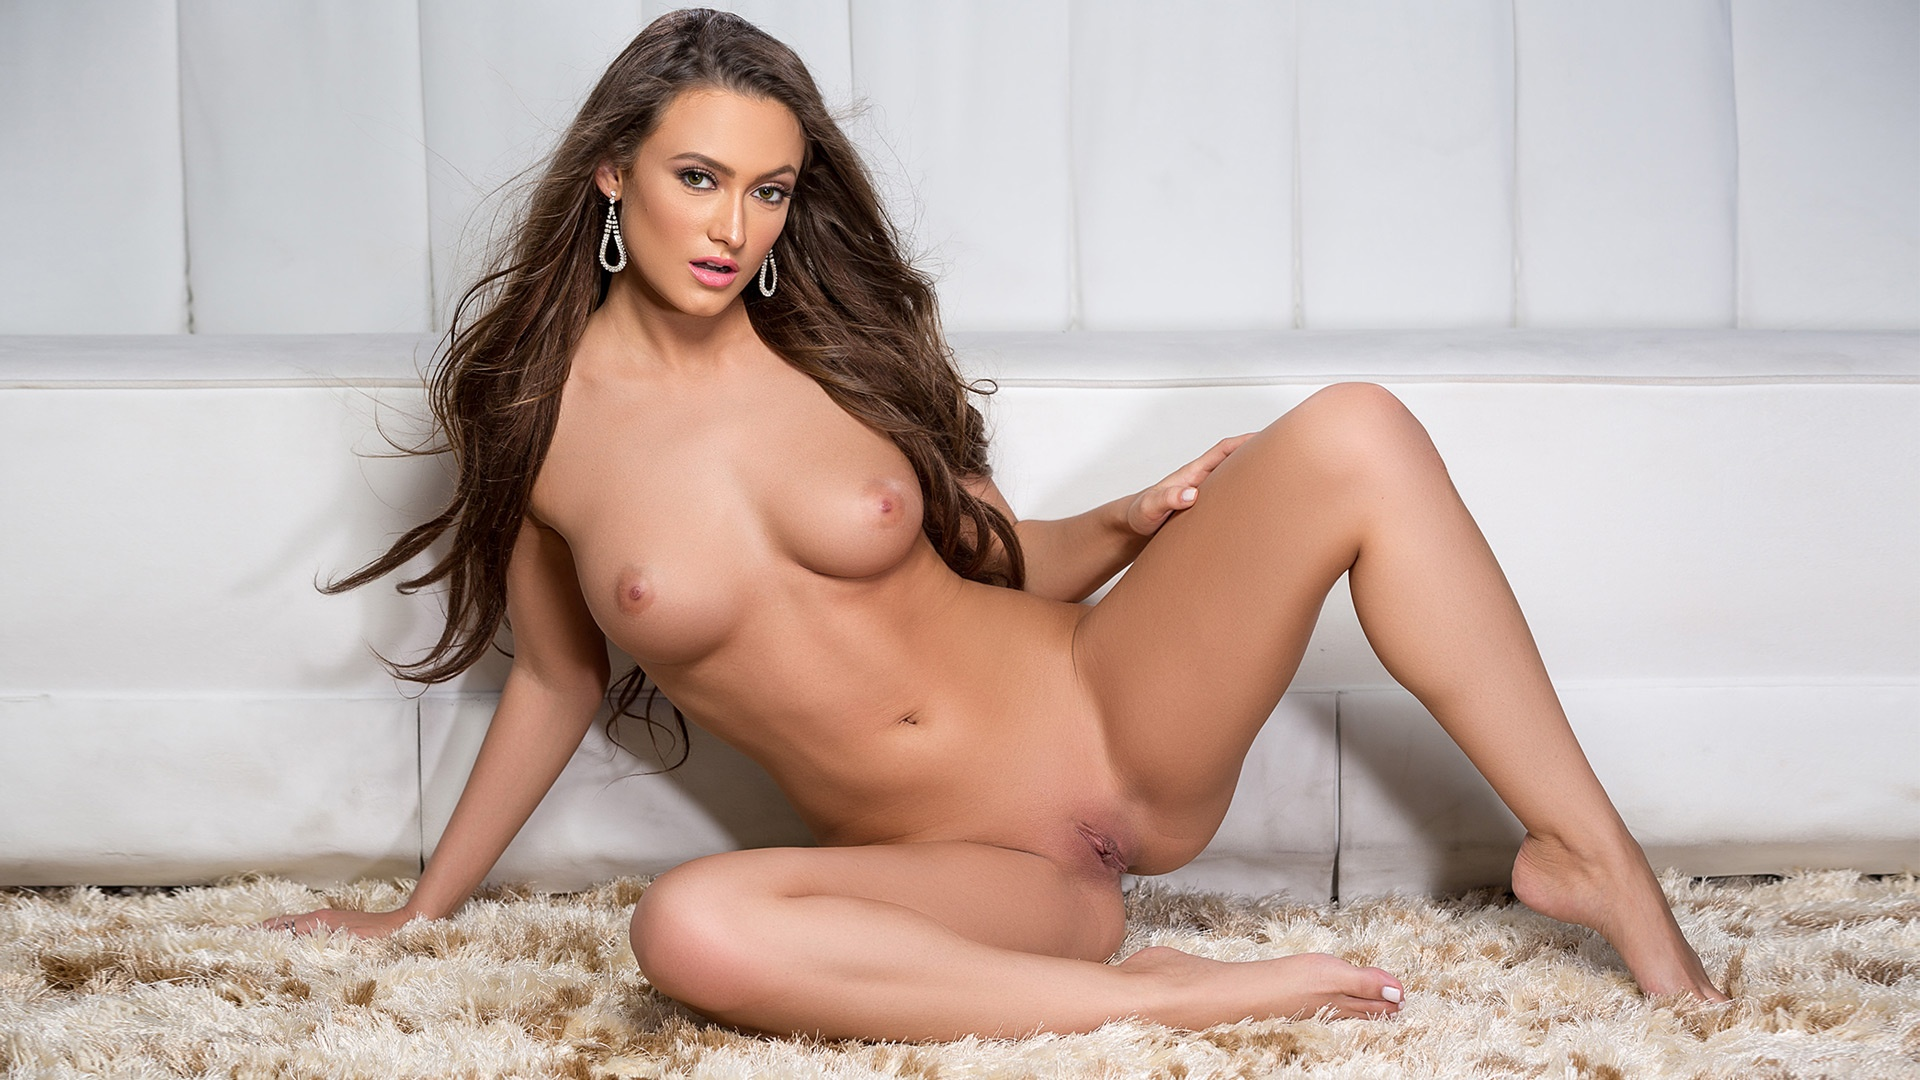 Deanna Greene hot naked shaved pussy playmate full frontal nude erotic ...